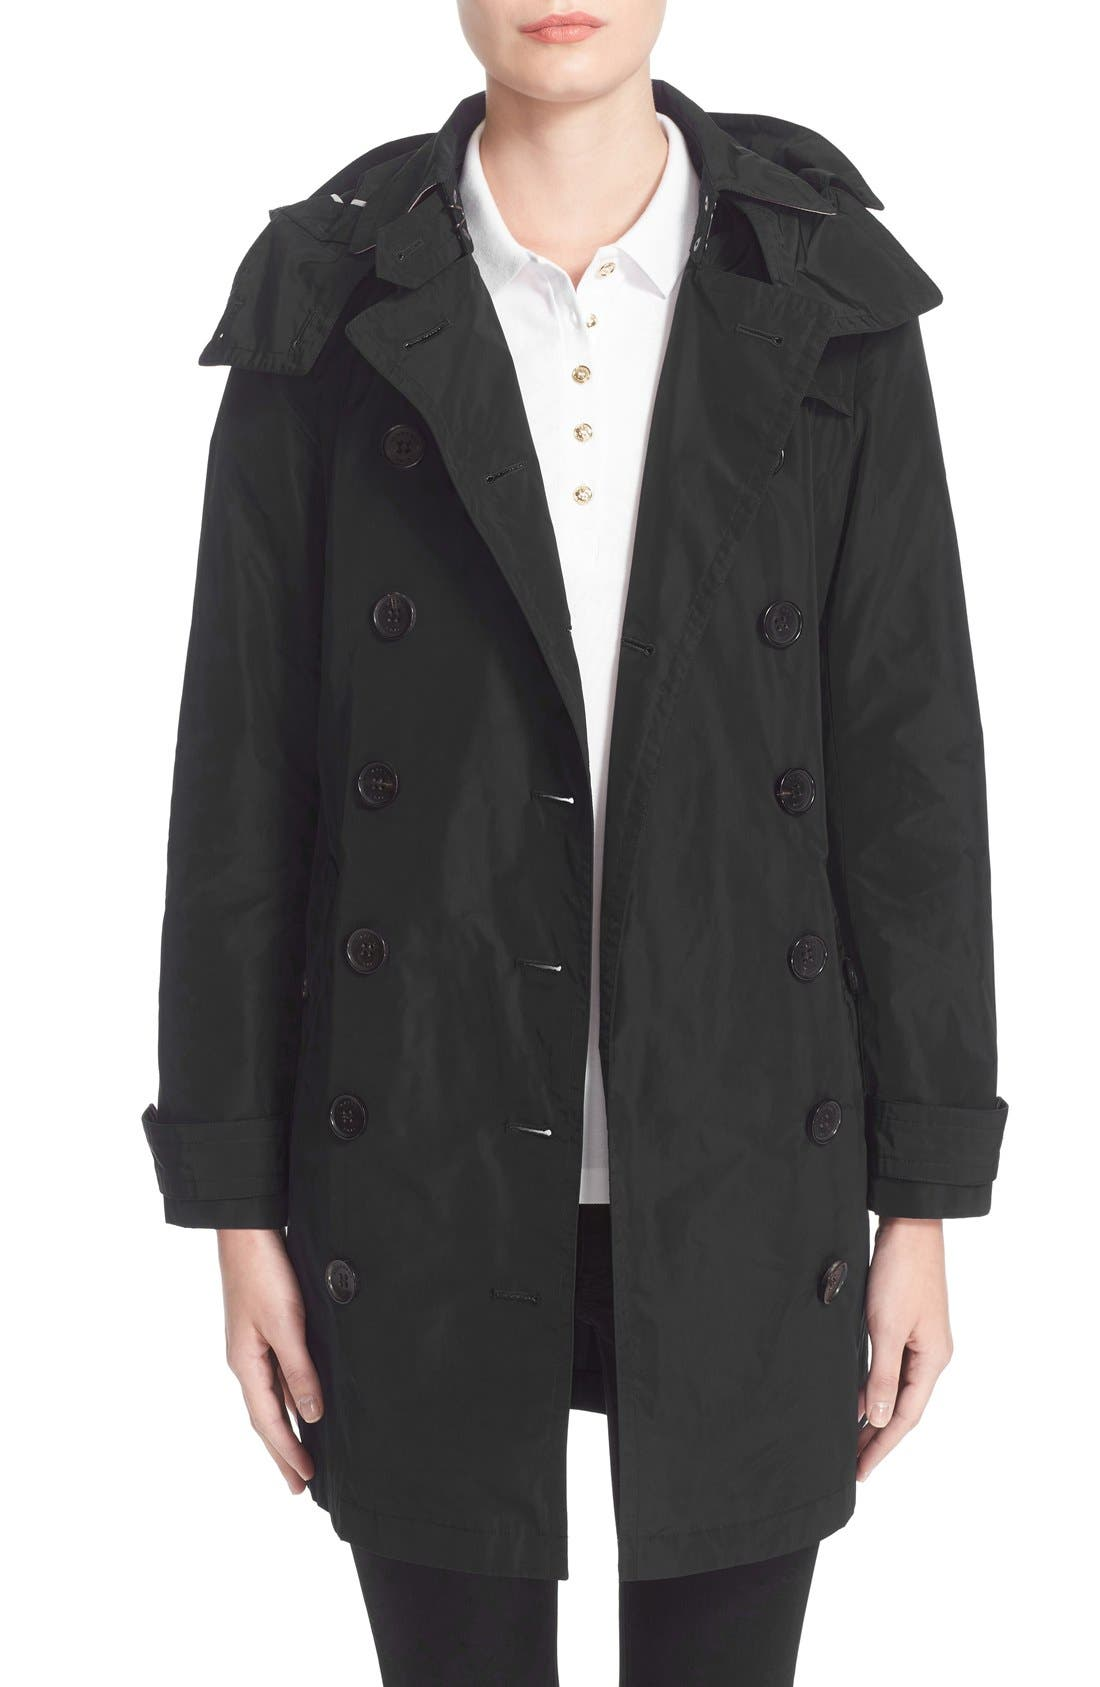 BURBERRY, Balmoral Packable Trench, Main thumbnail 1, color, 001